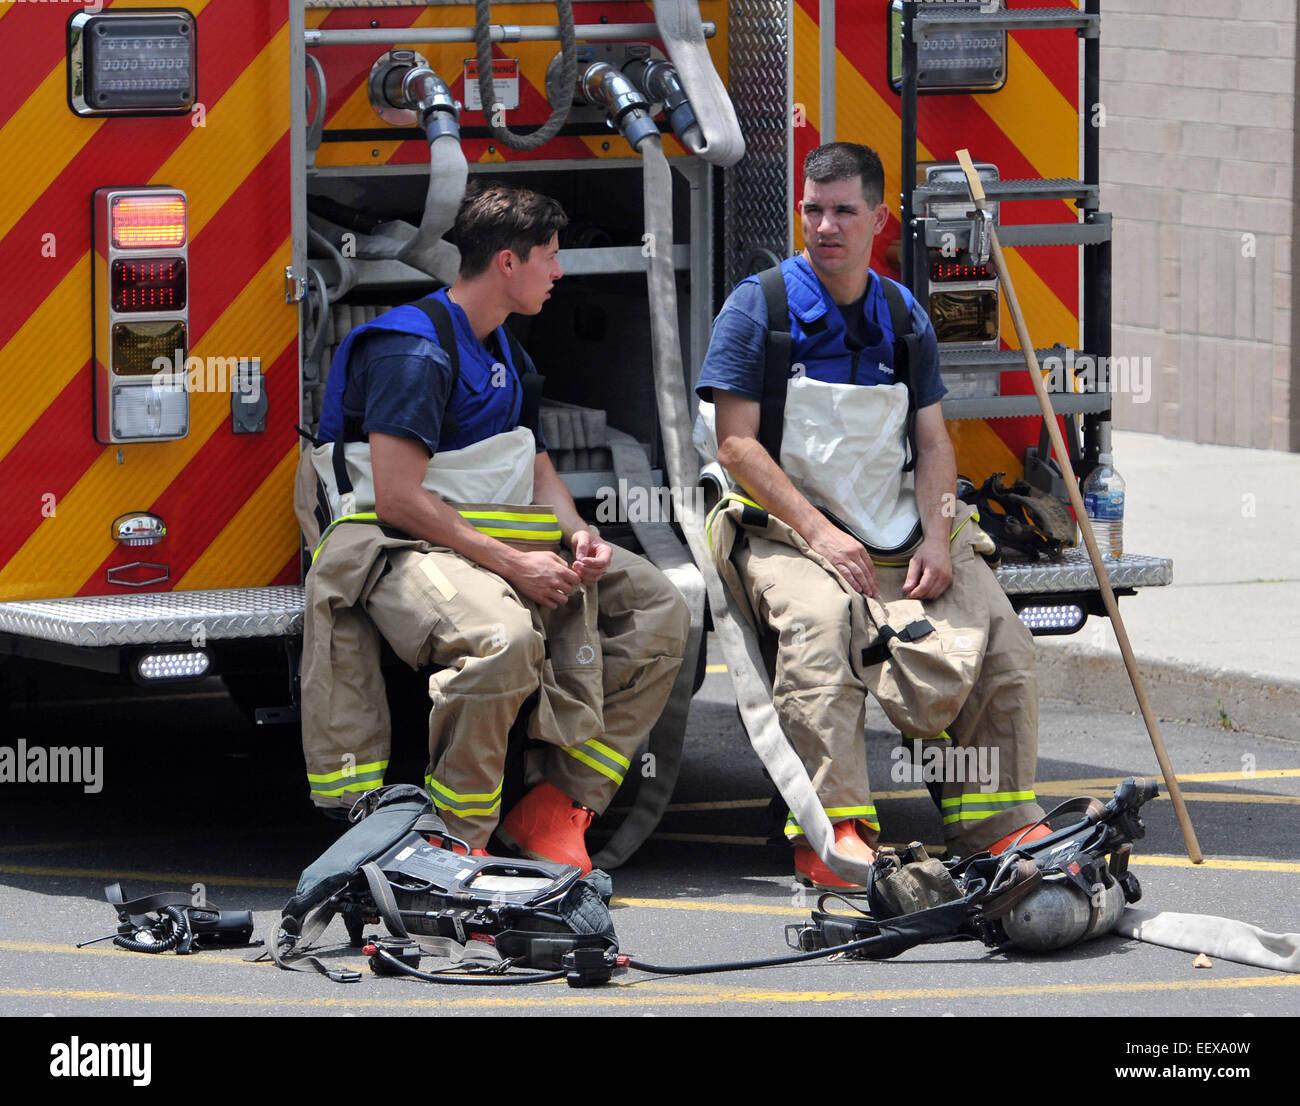 New Haven Firefighters in hazmat suits wait to enter the building after a spill at the New Haven Walgreens (York - Stock Image